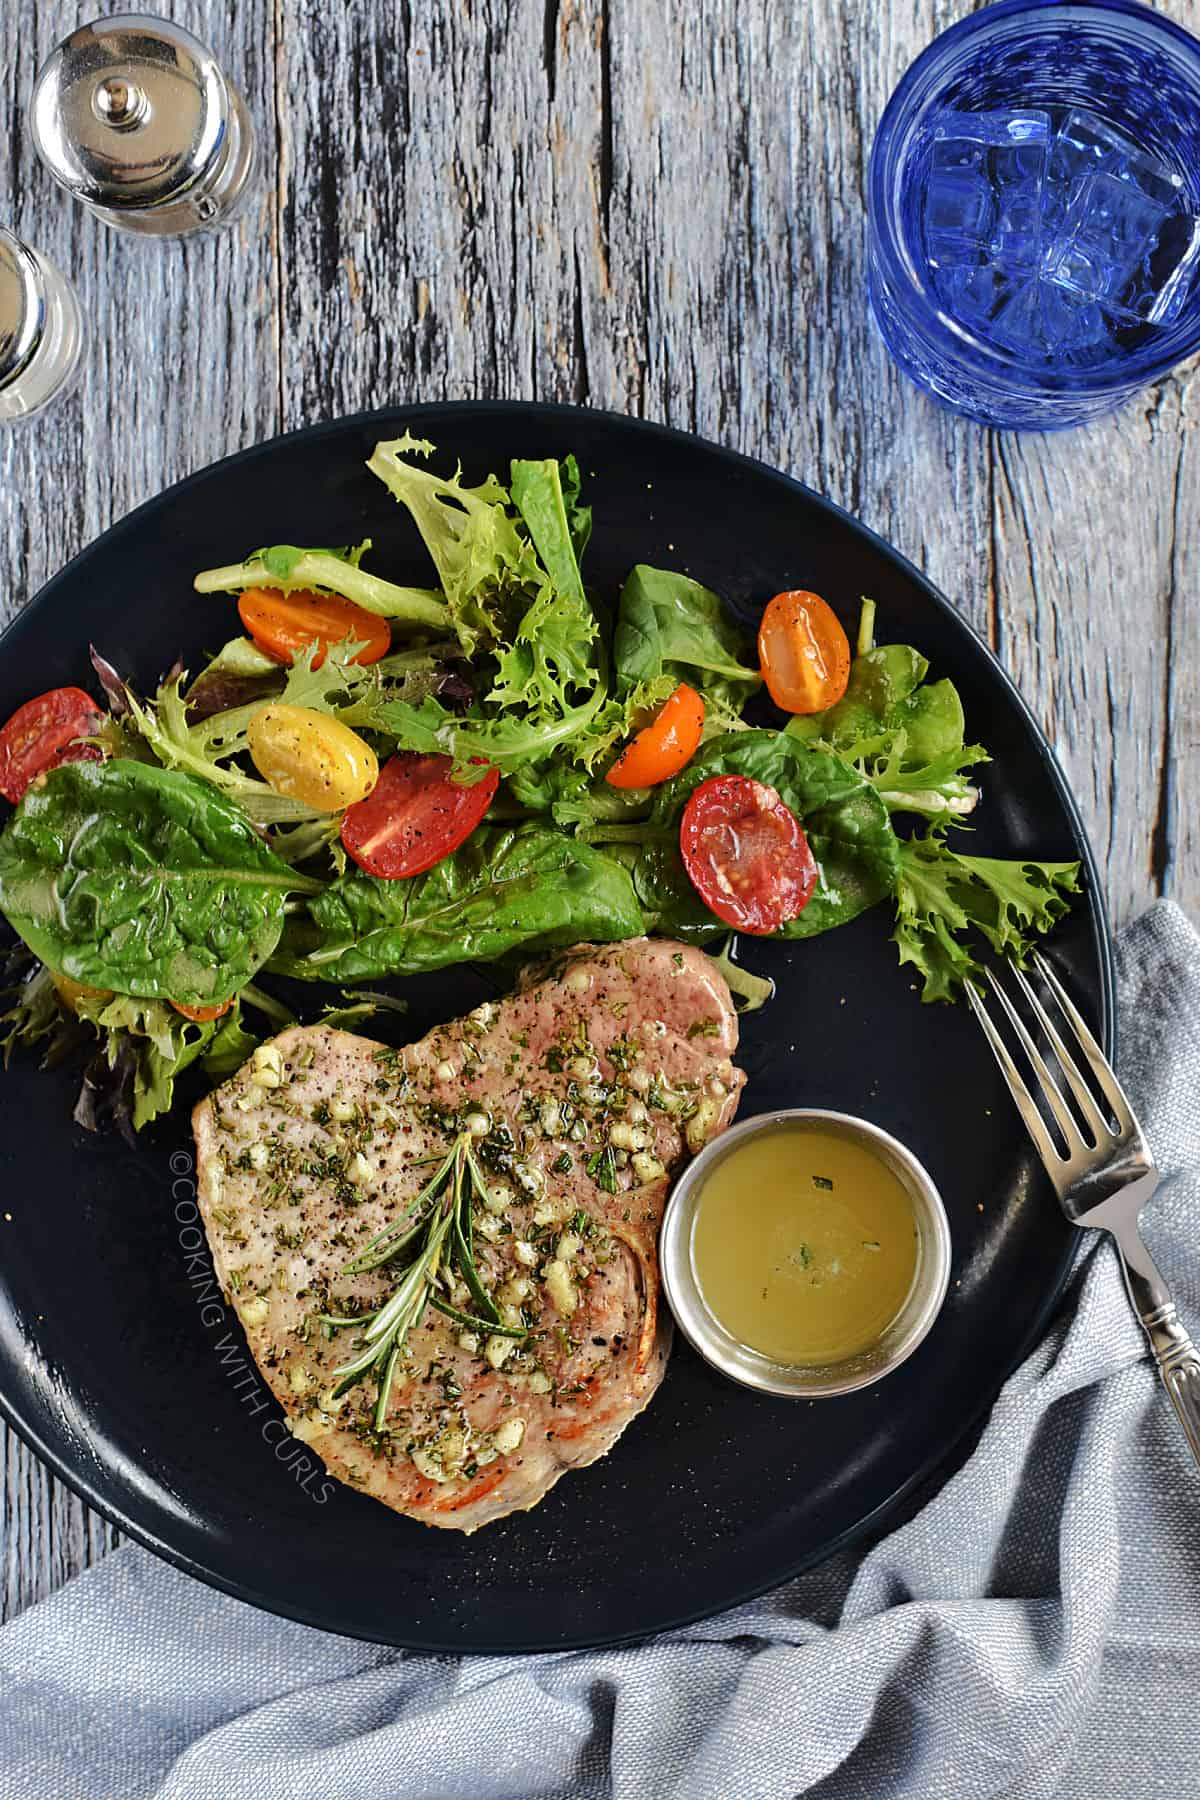 Looking down on a pork chop topped with garlic and rosemary butter with a green salad on the side.